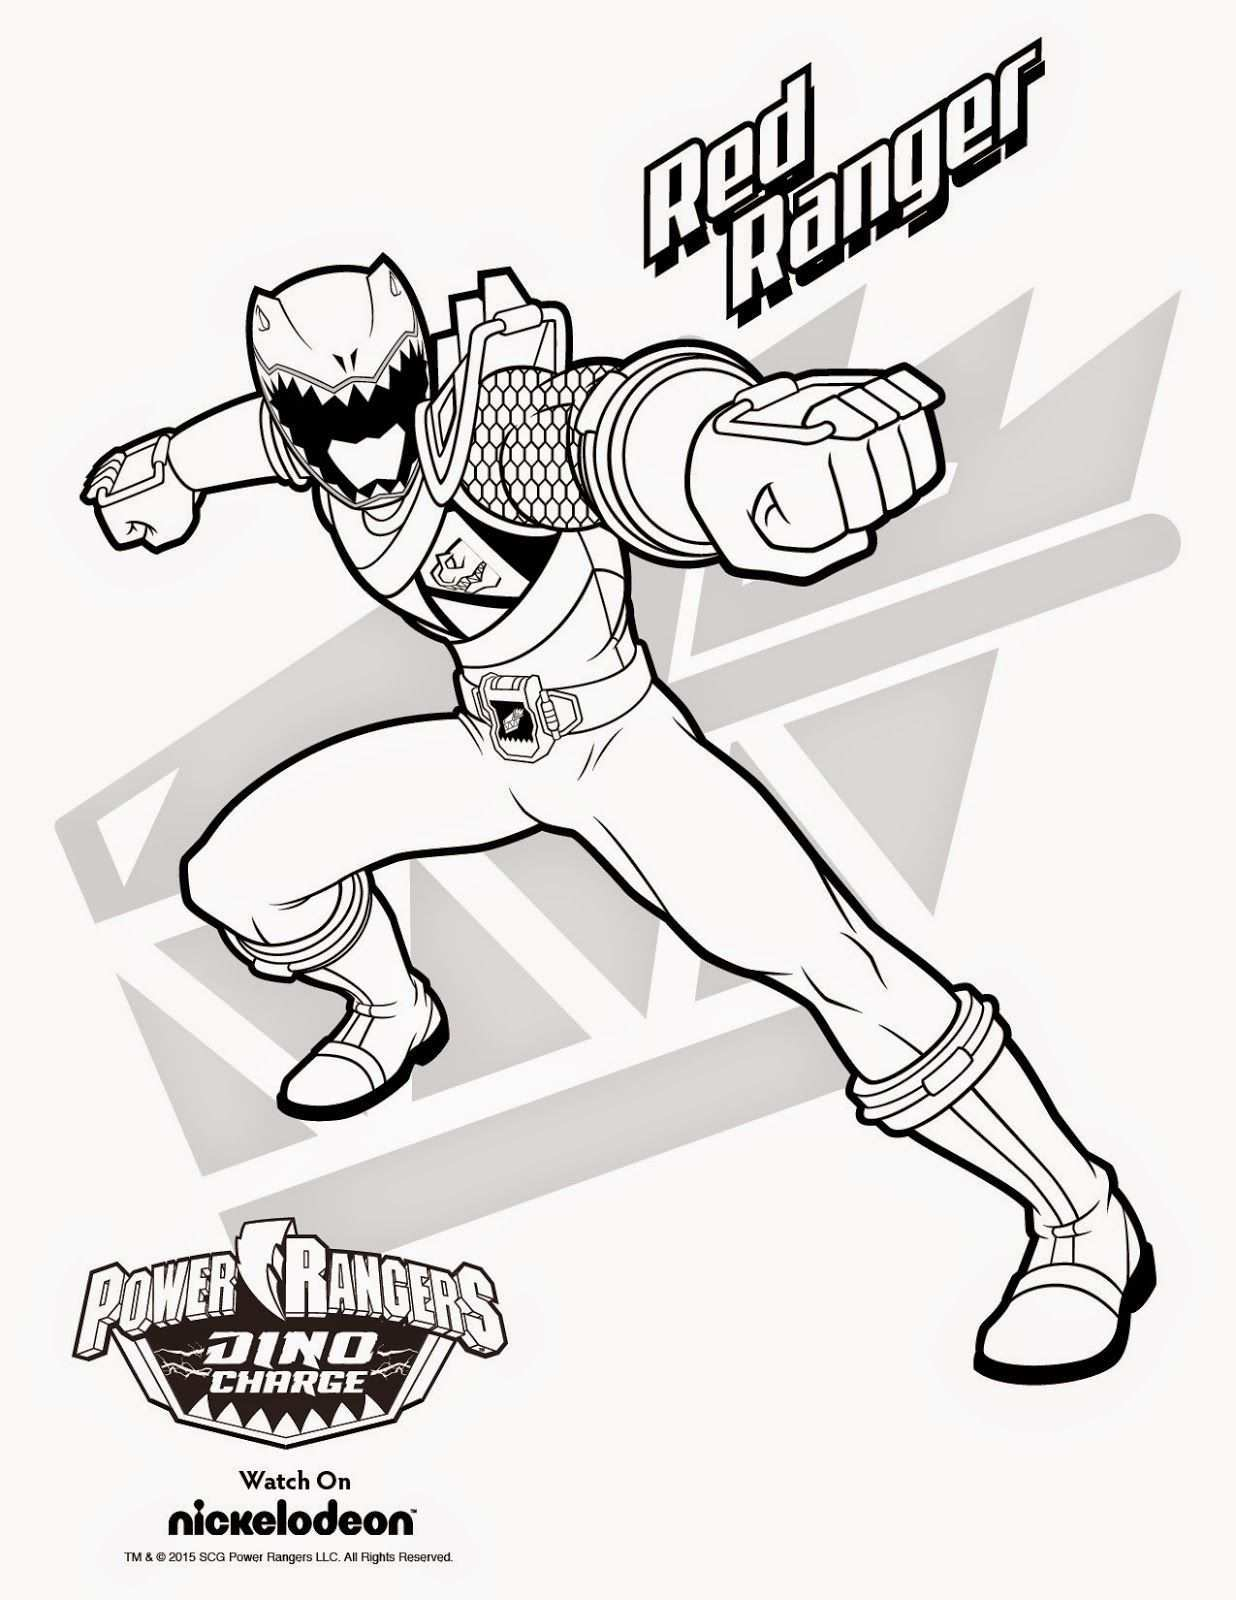 Get Charged Up This Spring With Power Rangers Dino Charge Powerrangers Power Rangers Coloring Pages Power Rangers Coloring Pages